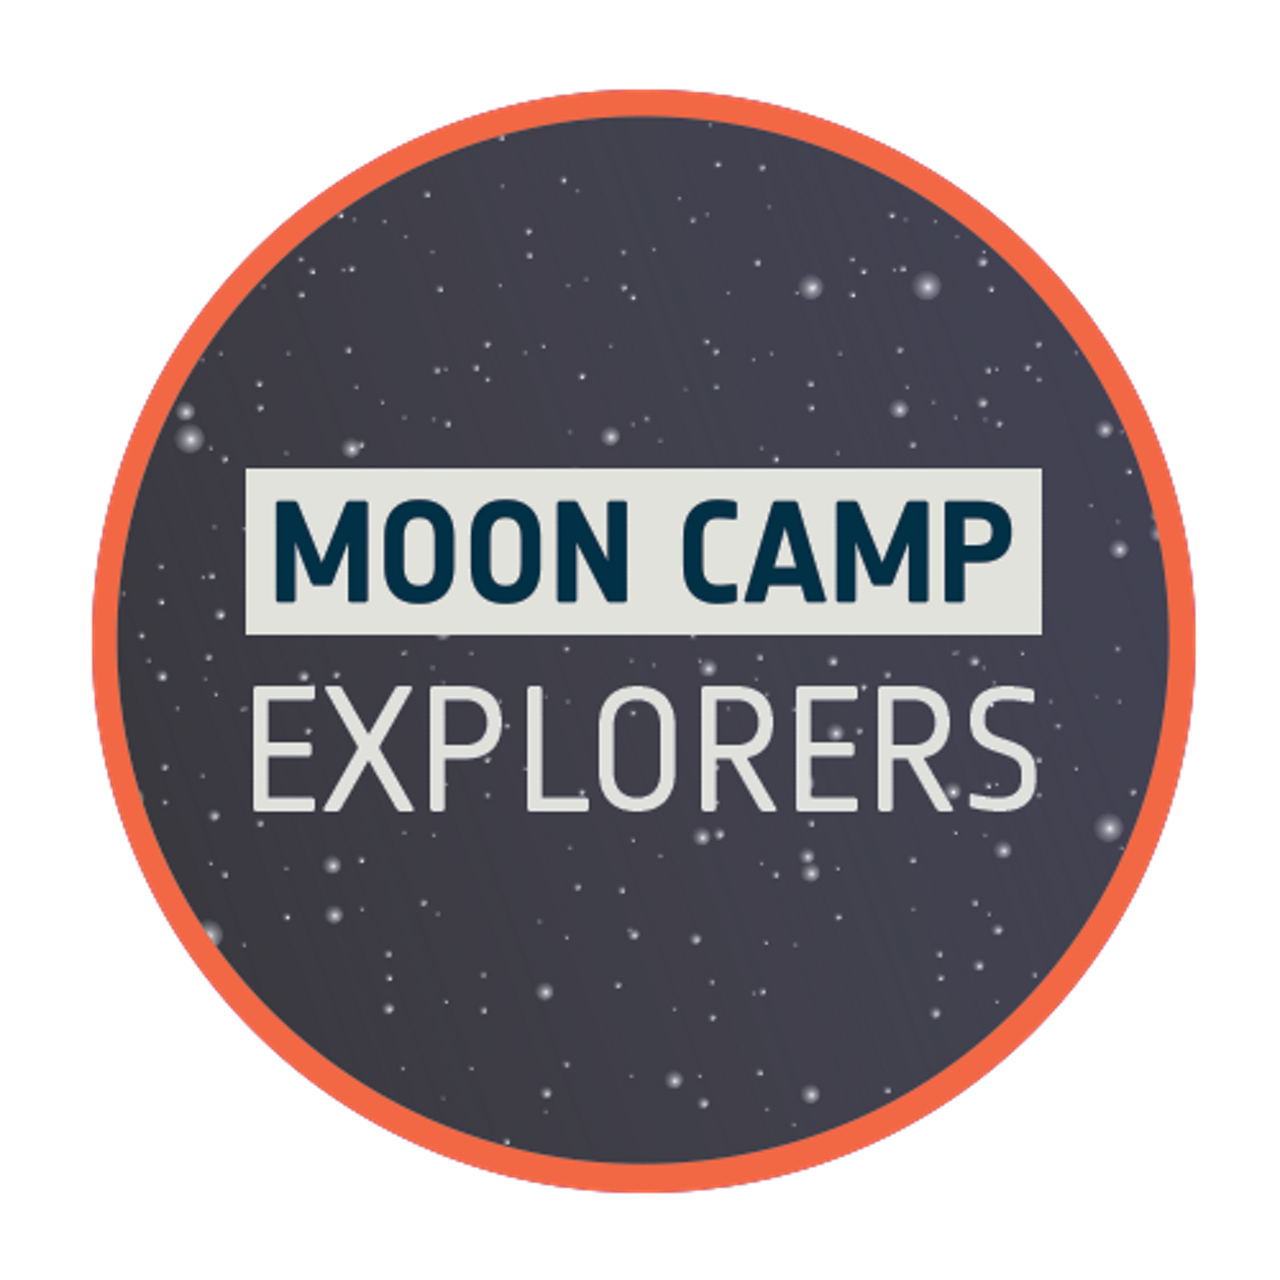 Logo for the intermediate level of the Airbus Foundation-supported Moon Camp Challenge.